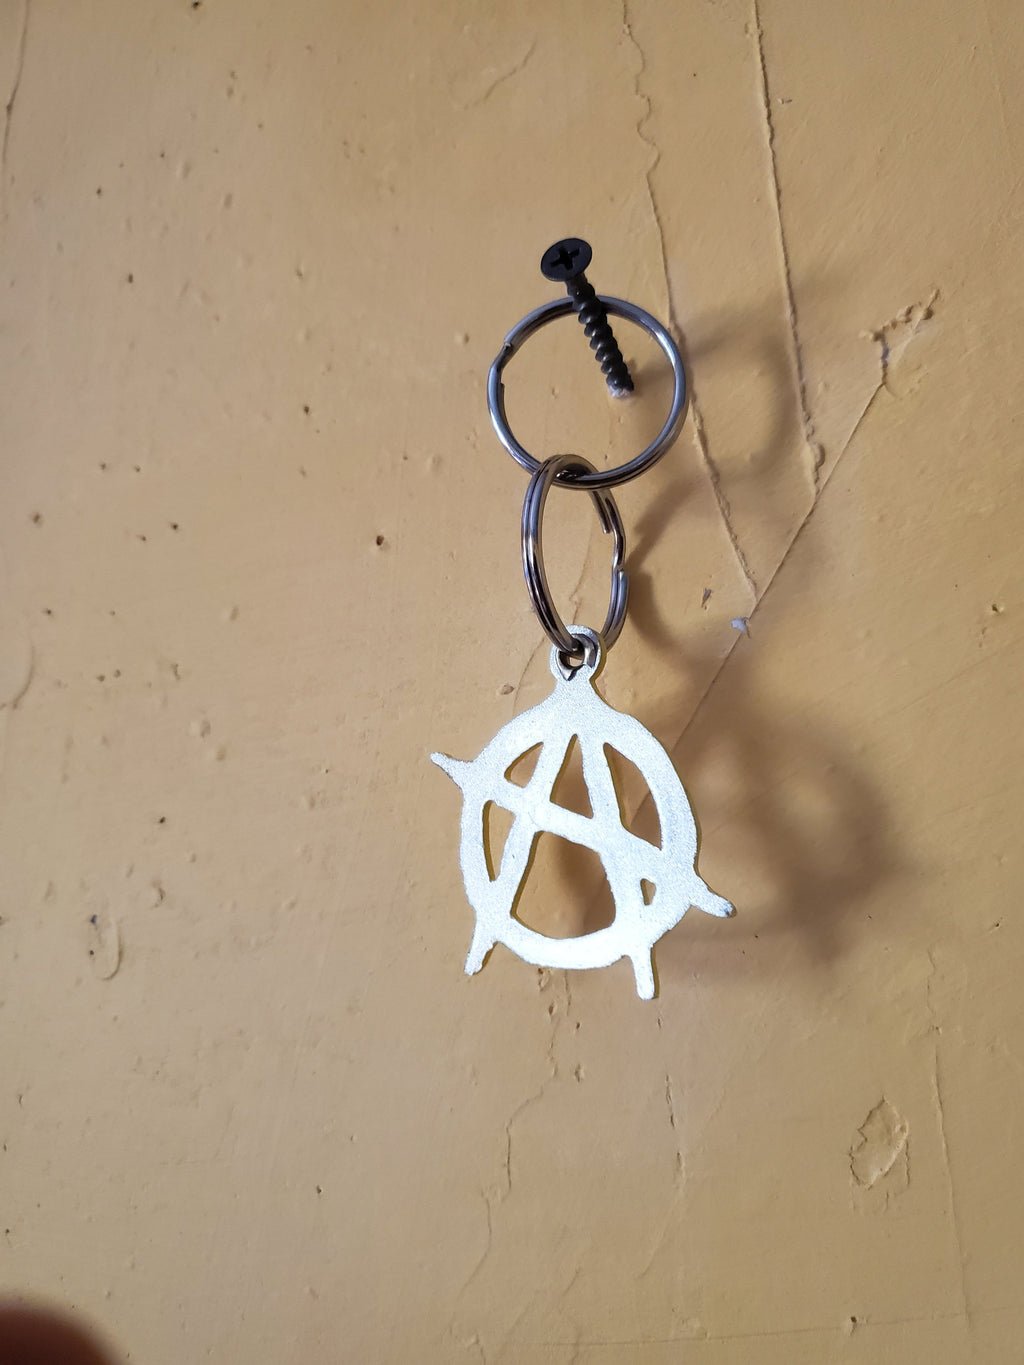 Anarchy Sign Keychain